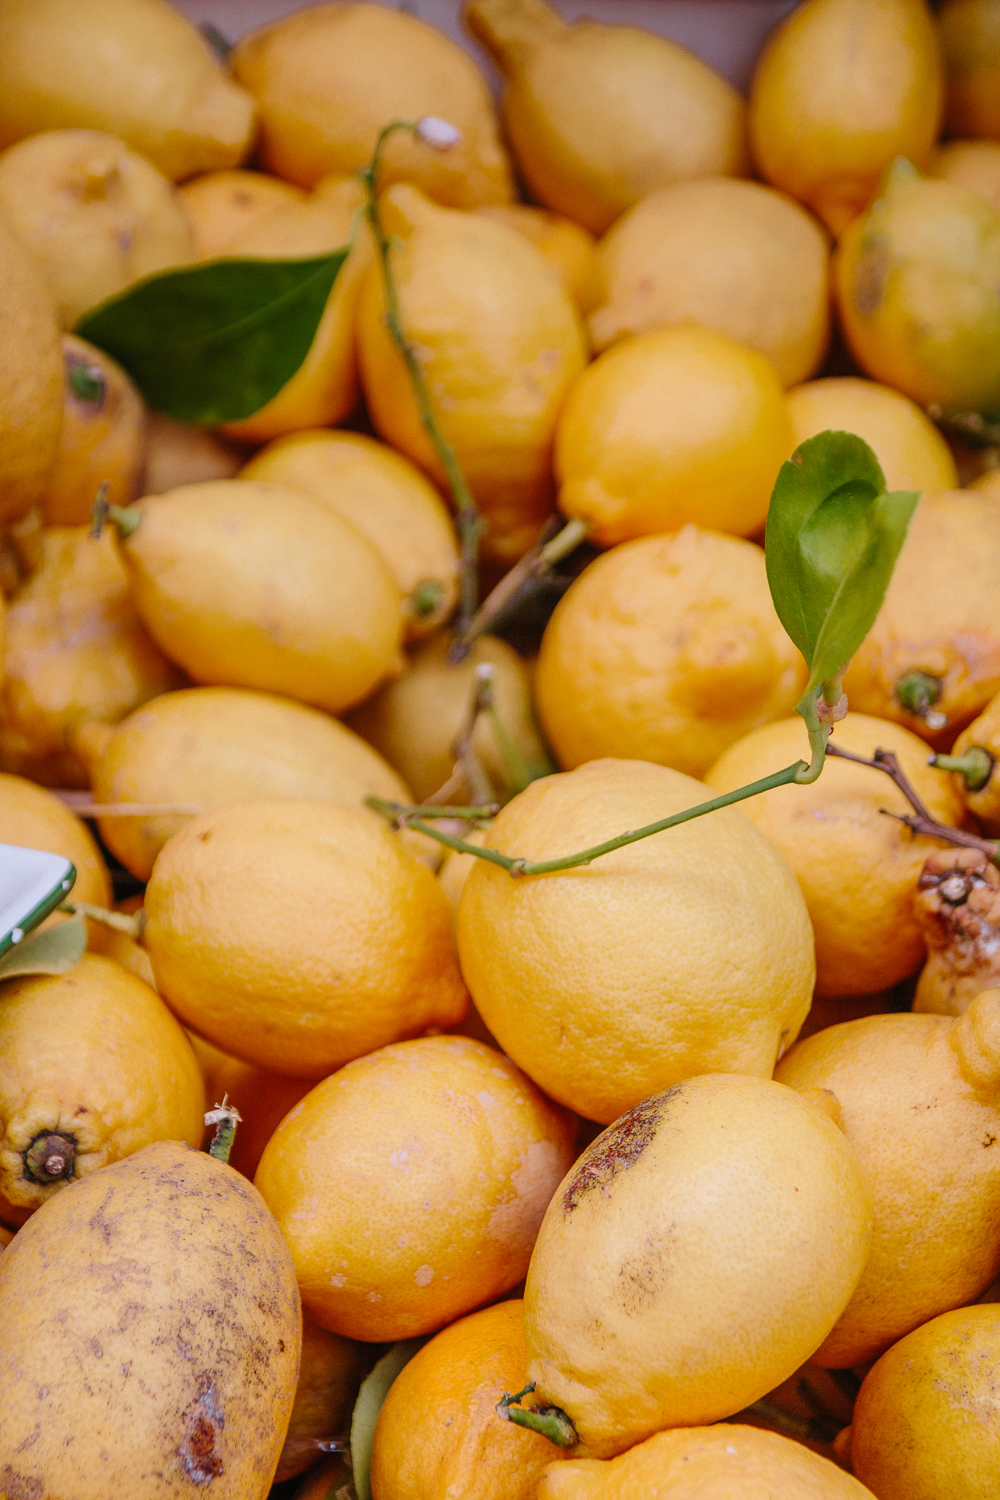 Lemons for Sale in Limone, Lake Garda